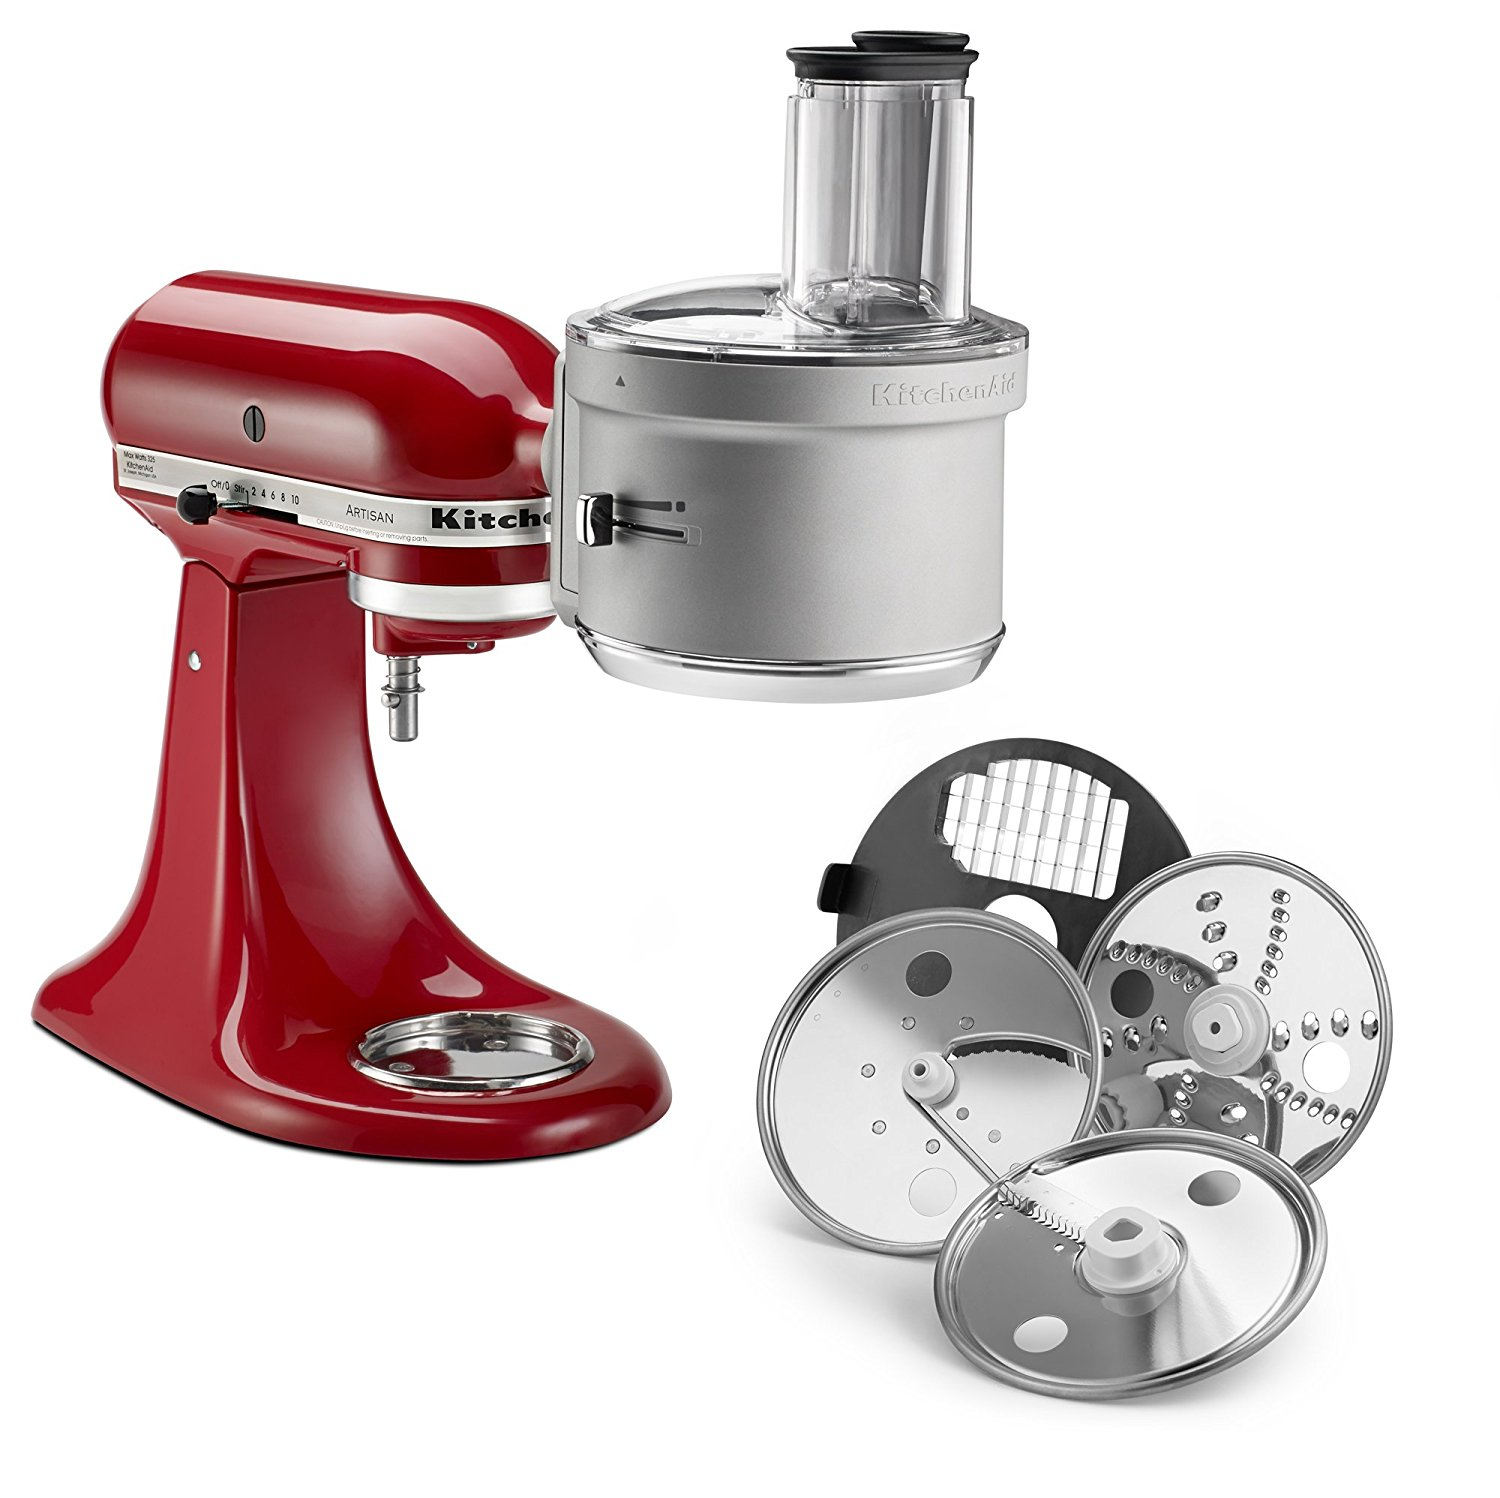 $$$ (If you have a Kitchen Aid Stand Mixer)